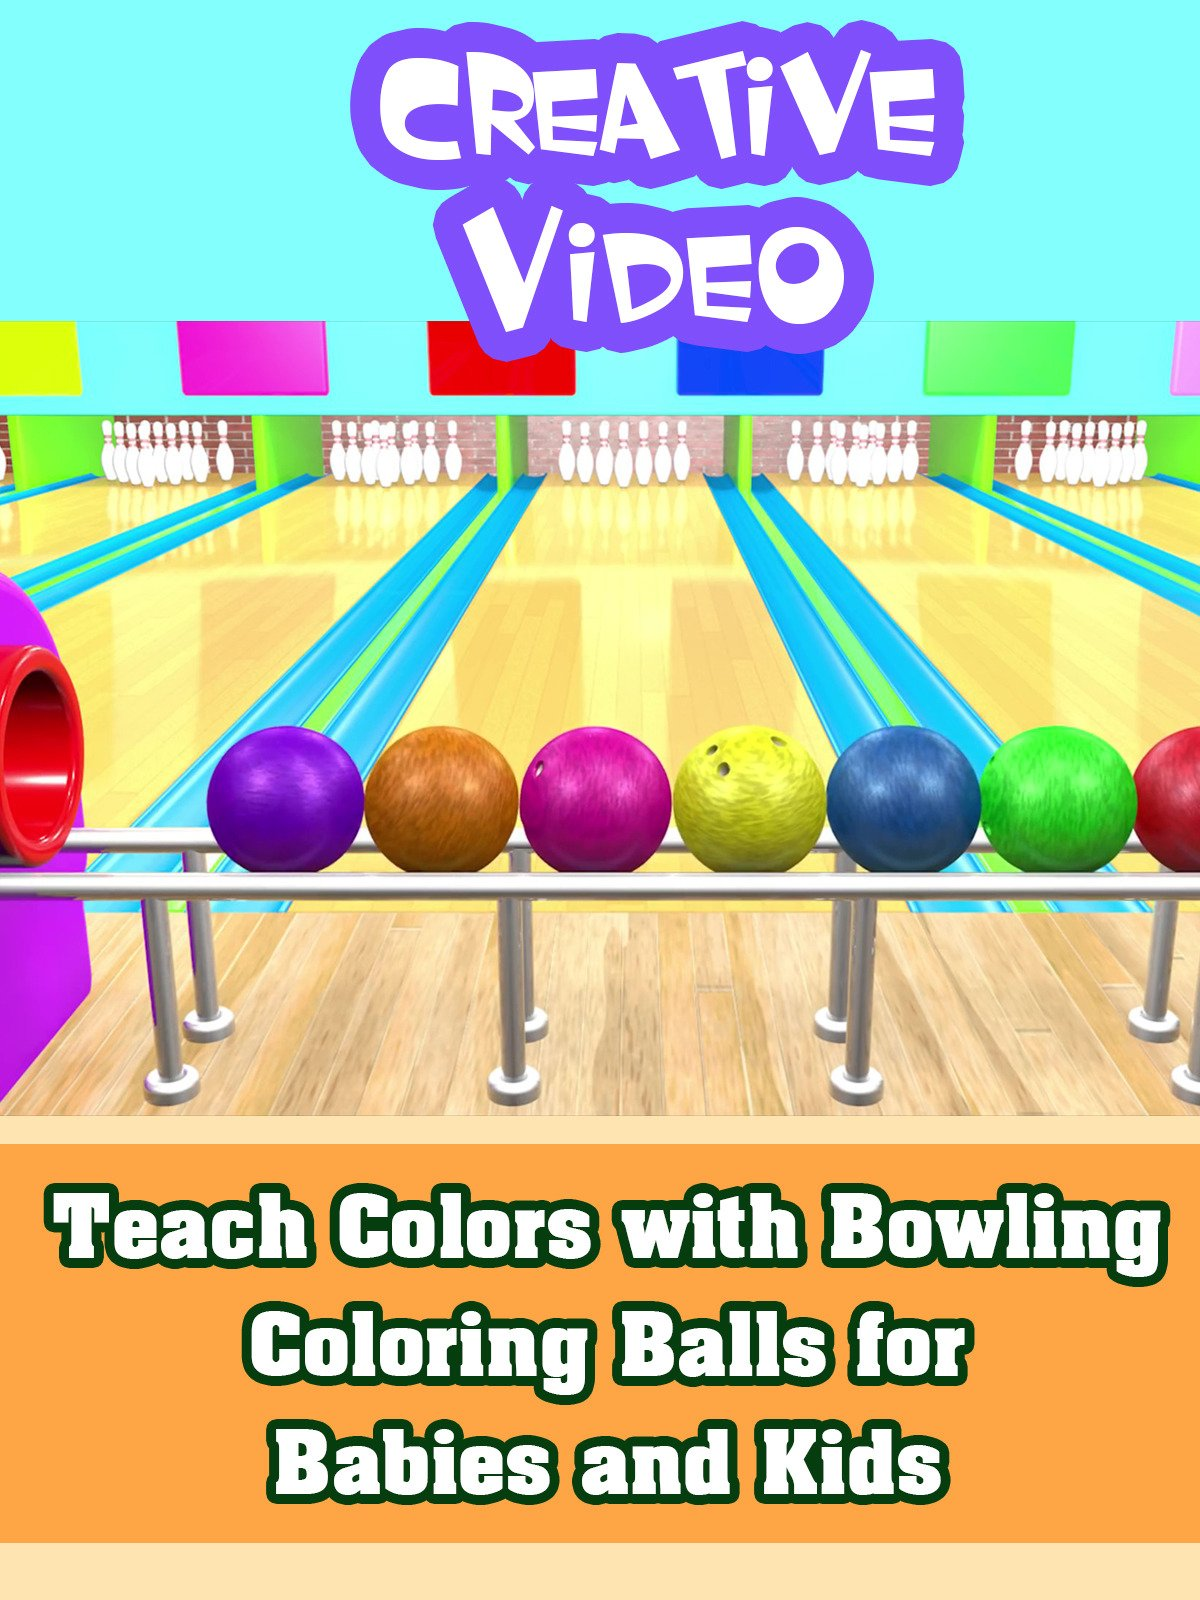 Teach Colors with Bowling